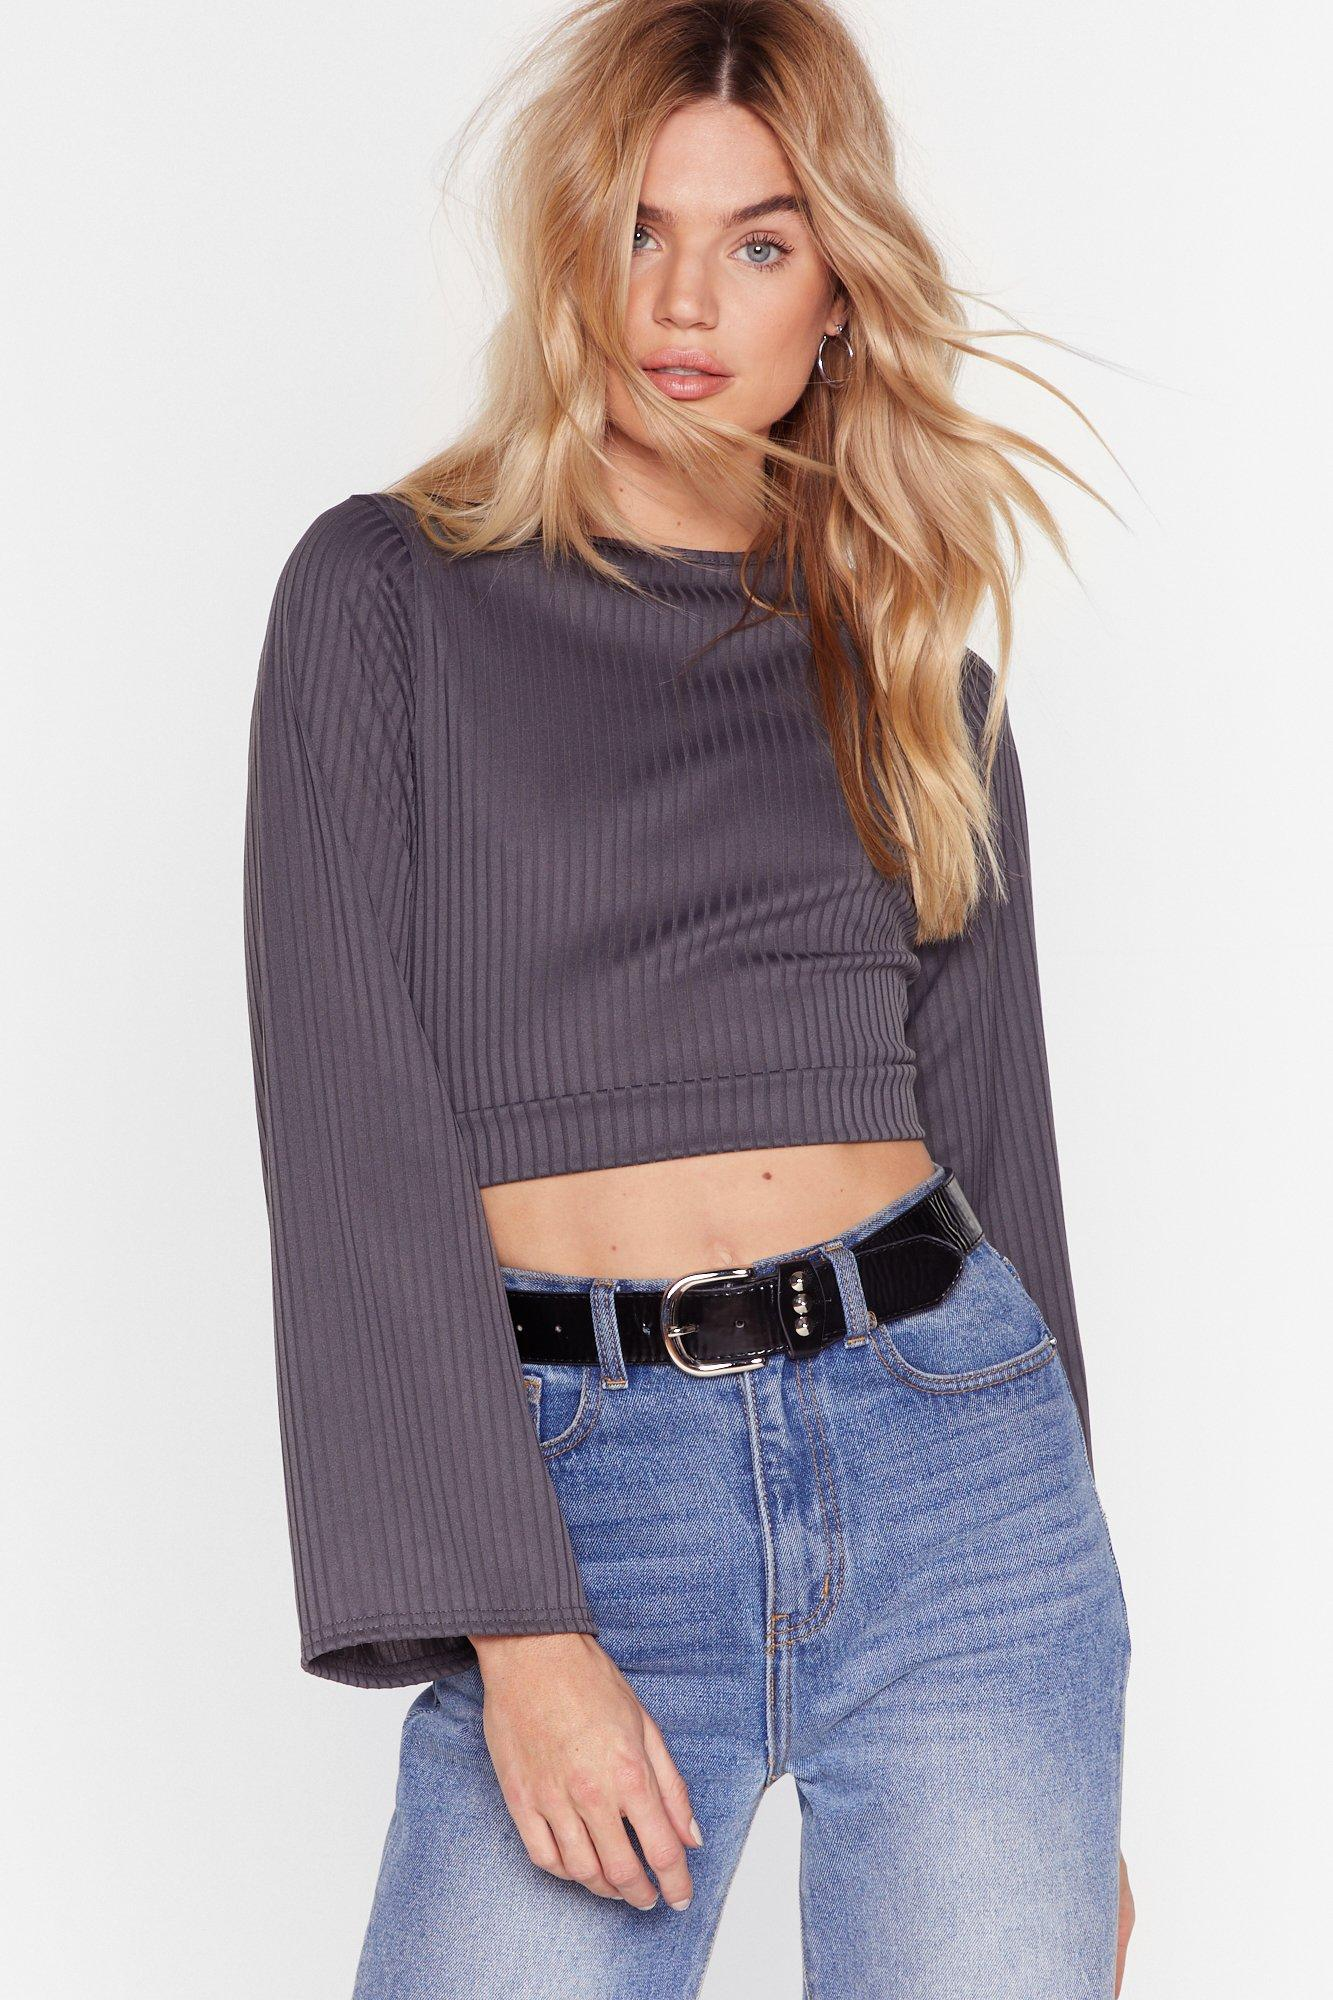 Image of Do Rib All Over Again Cropped Top